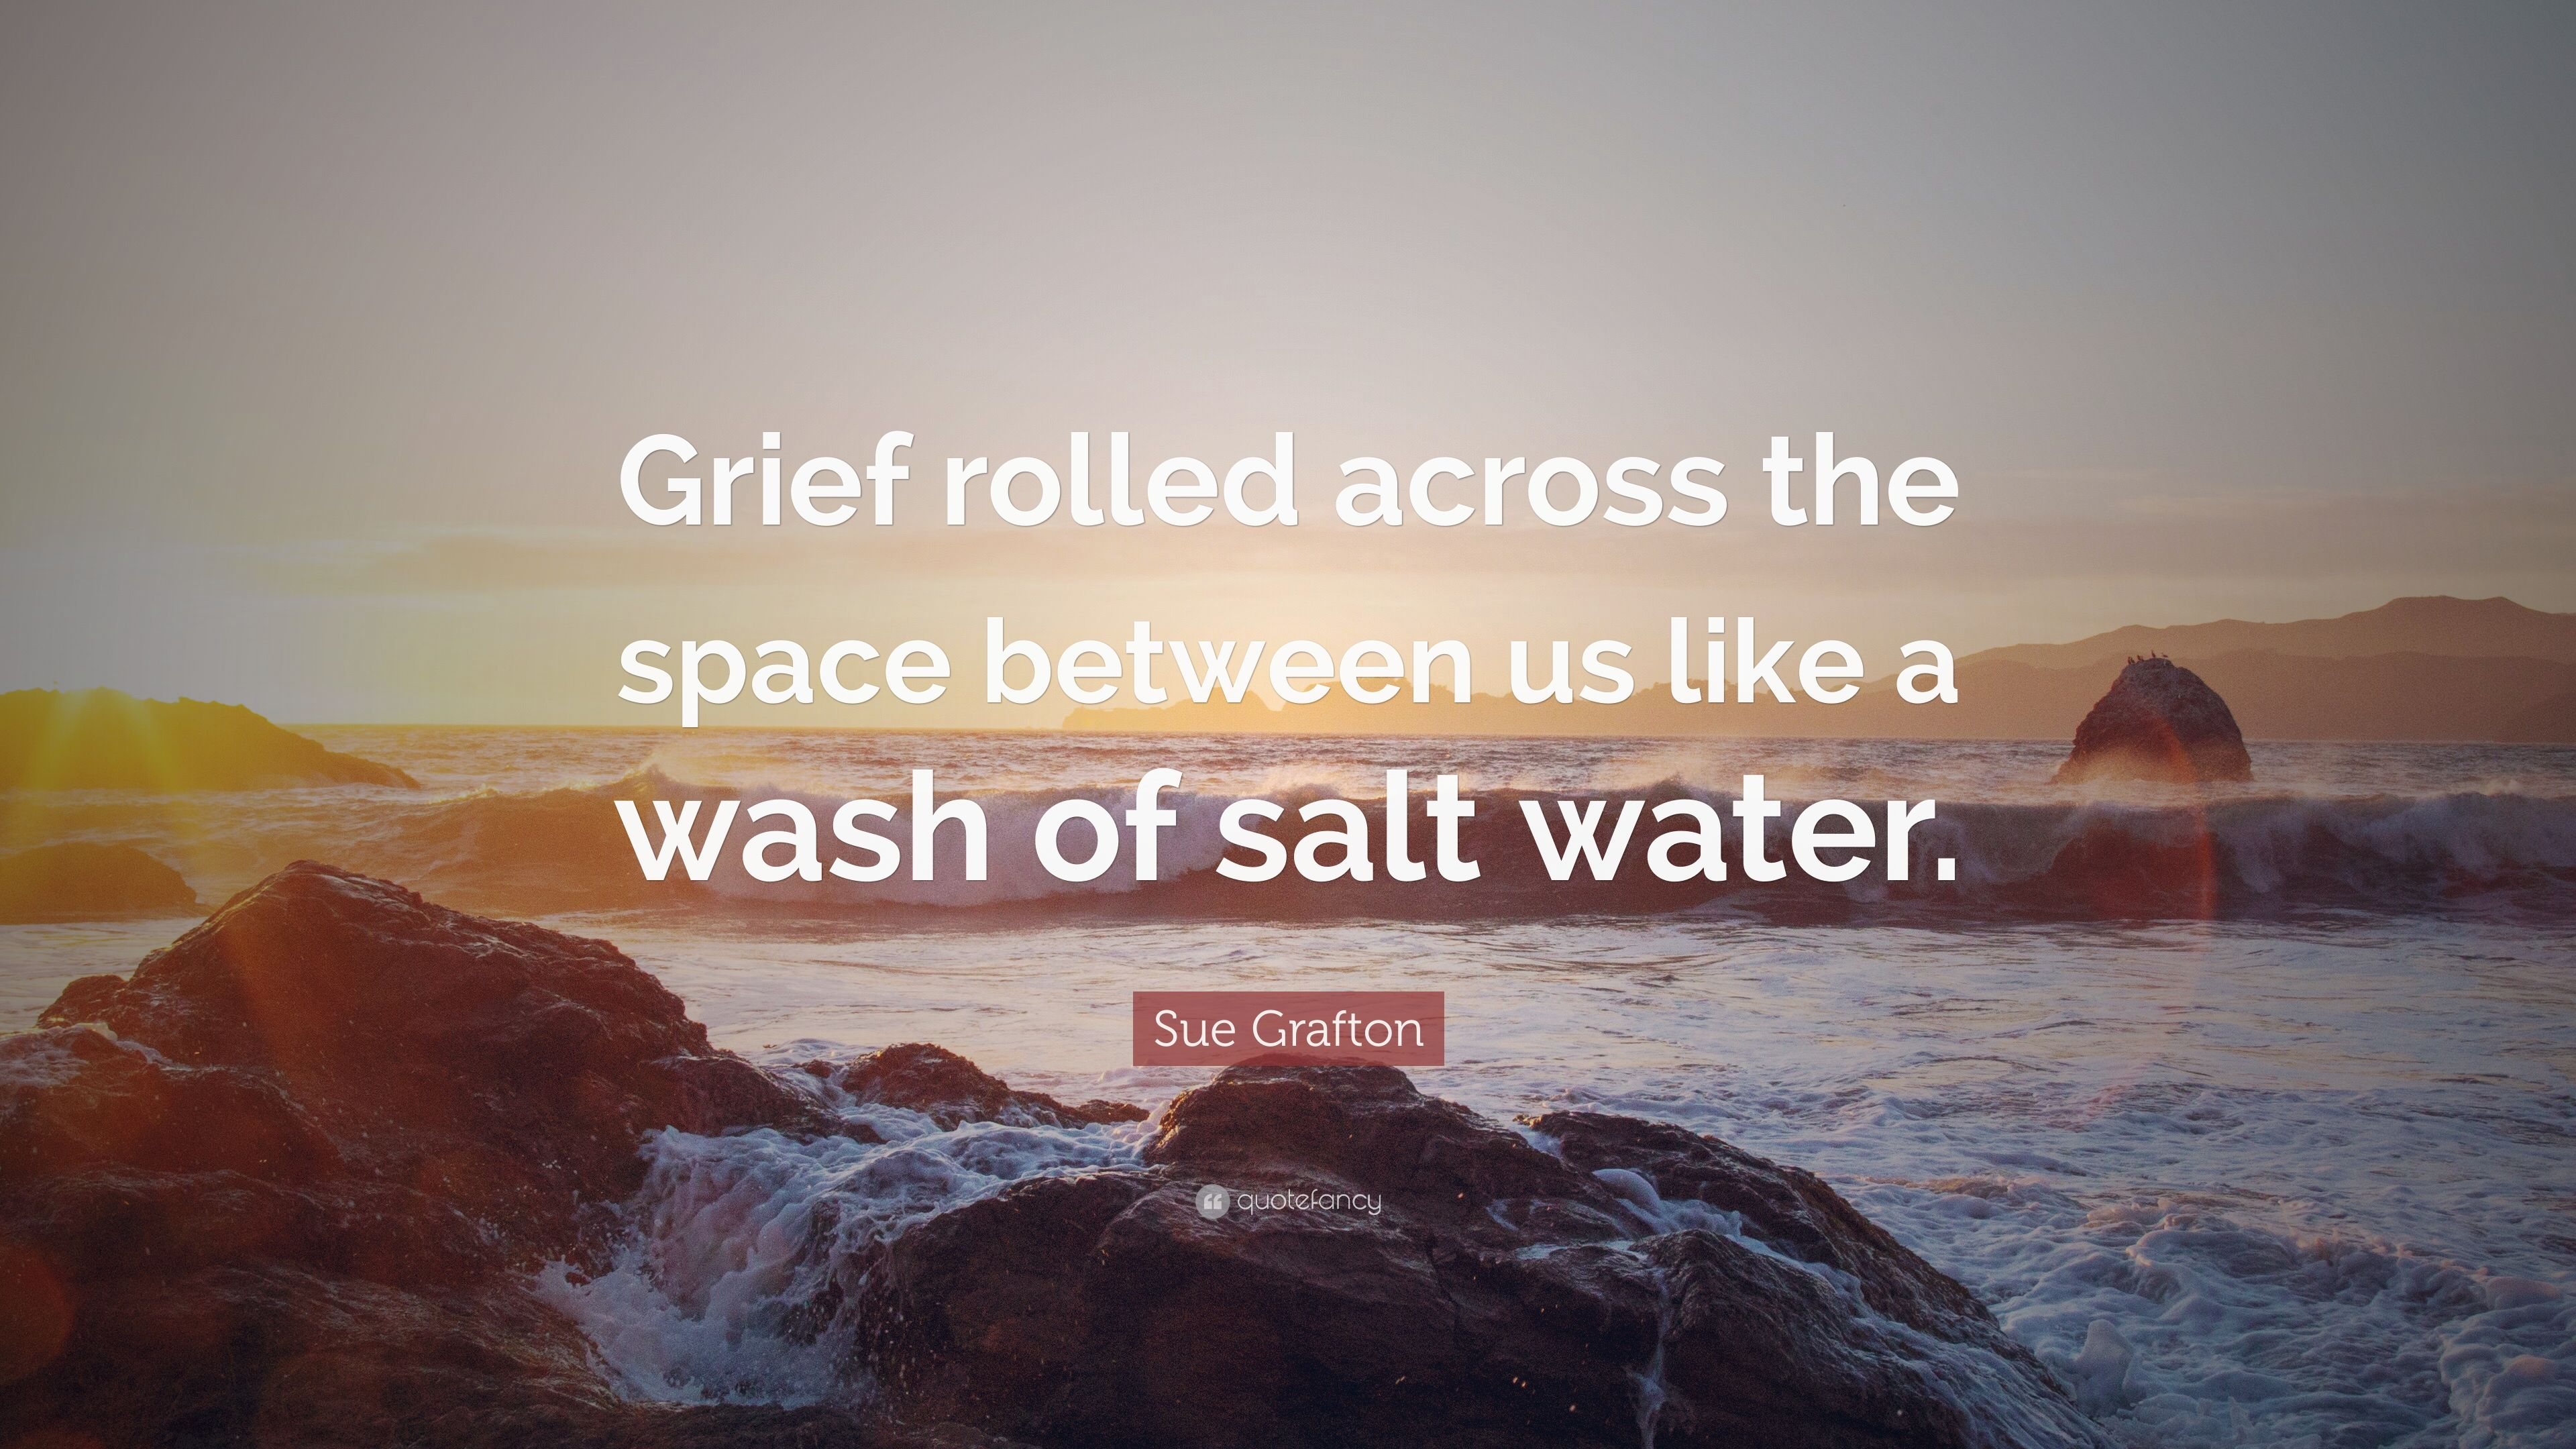 Sue Grafton Quote Grief Rolled Across The Space Between Us Like A